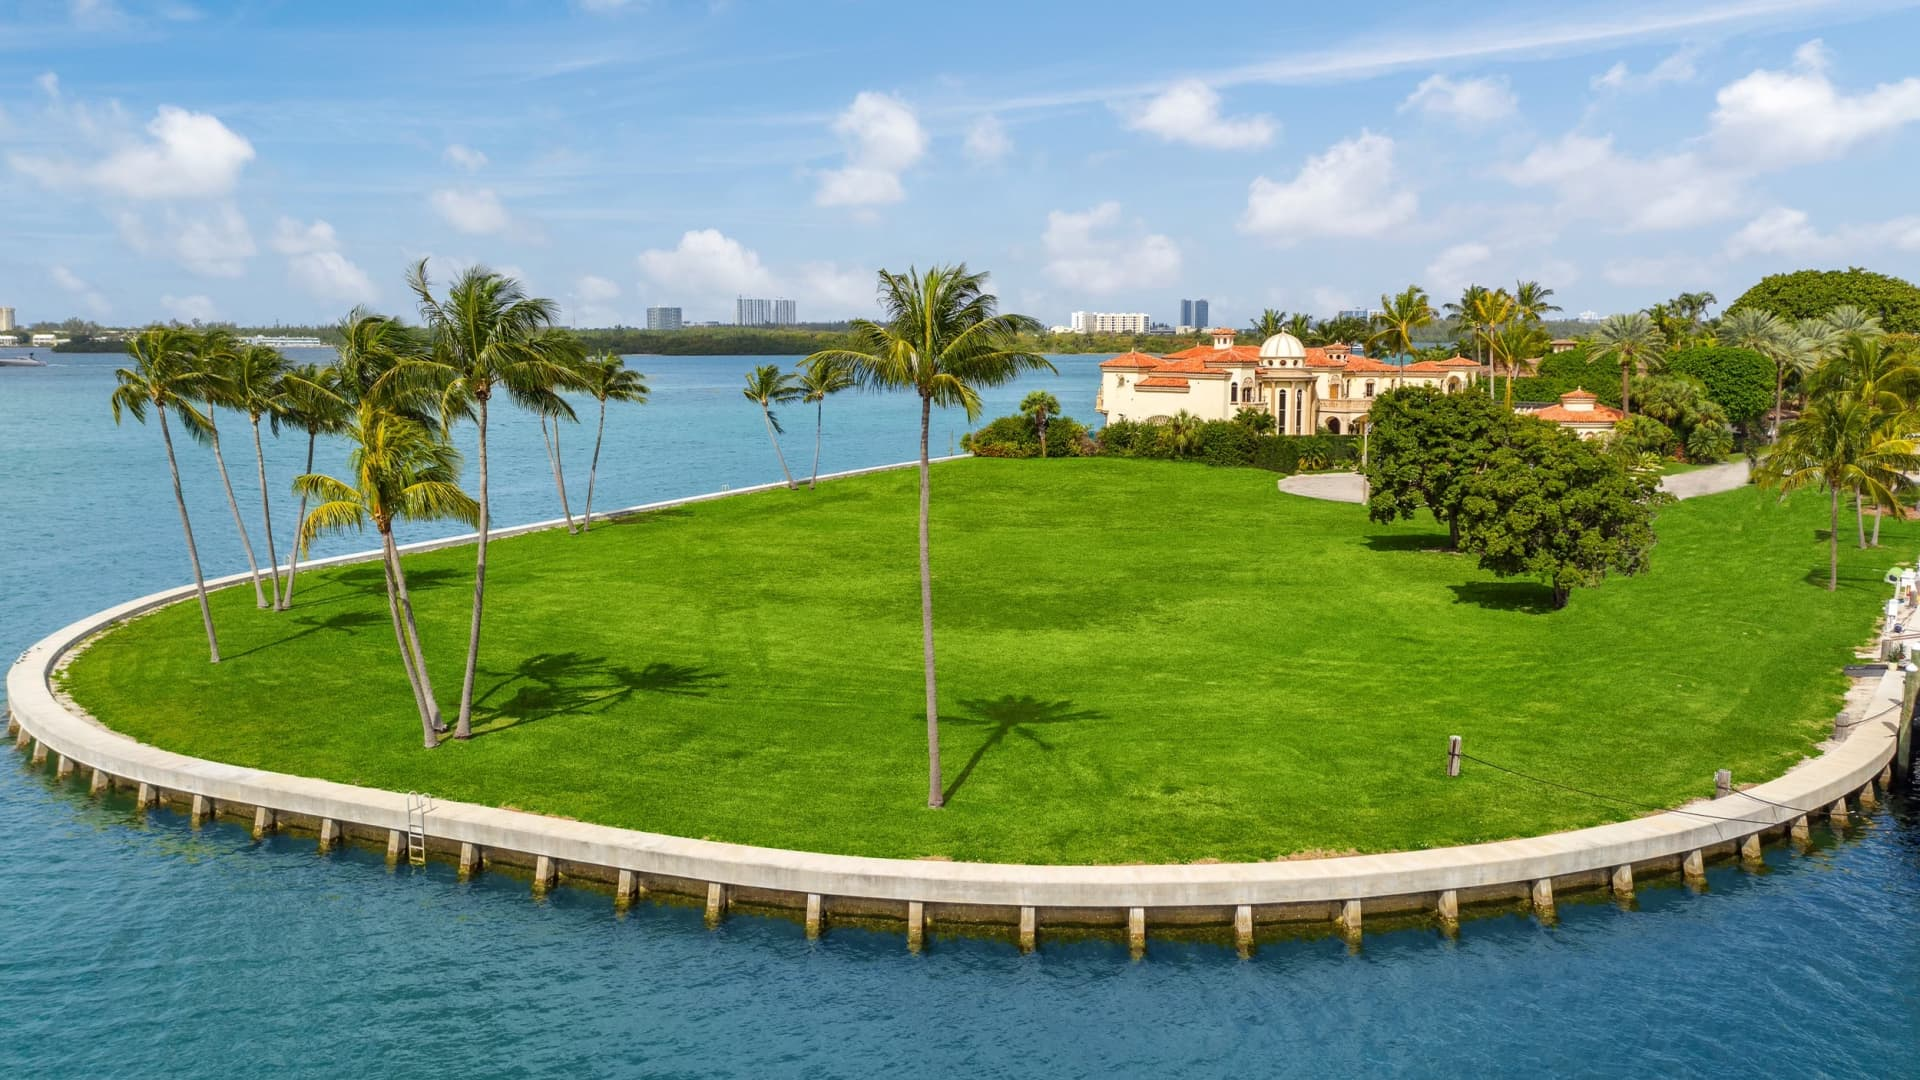 The $65 million lot of land at 200 Bal Bay Drive does not include a home.